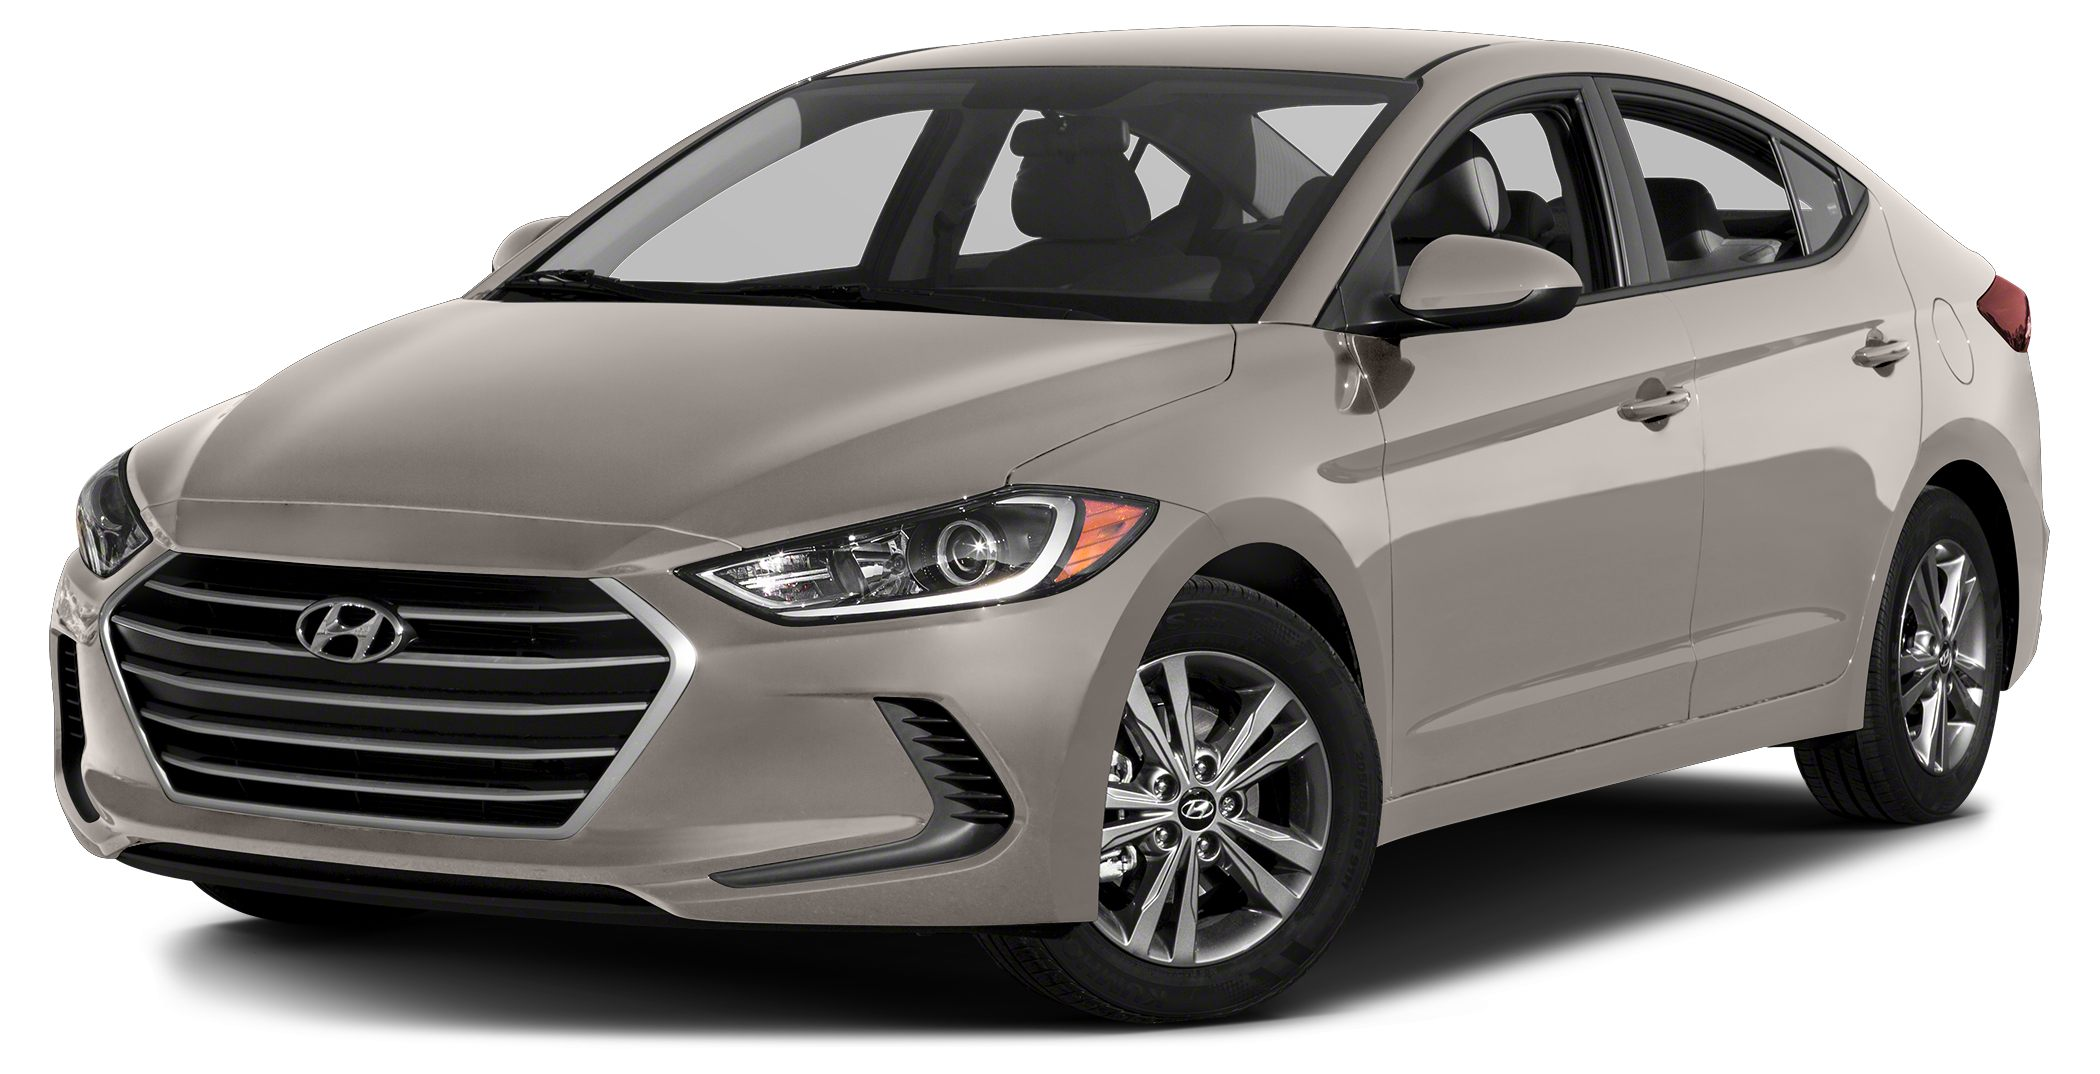 2017 Hyundai Elantra SE Bluetooth Hands-Free Phone System Android Auto  Apple CarPlay Display A